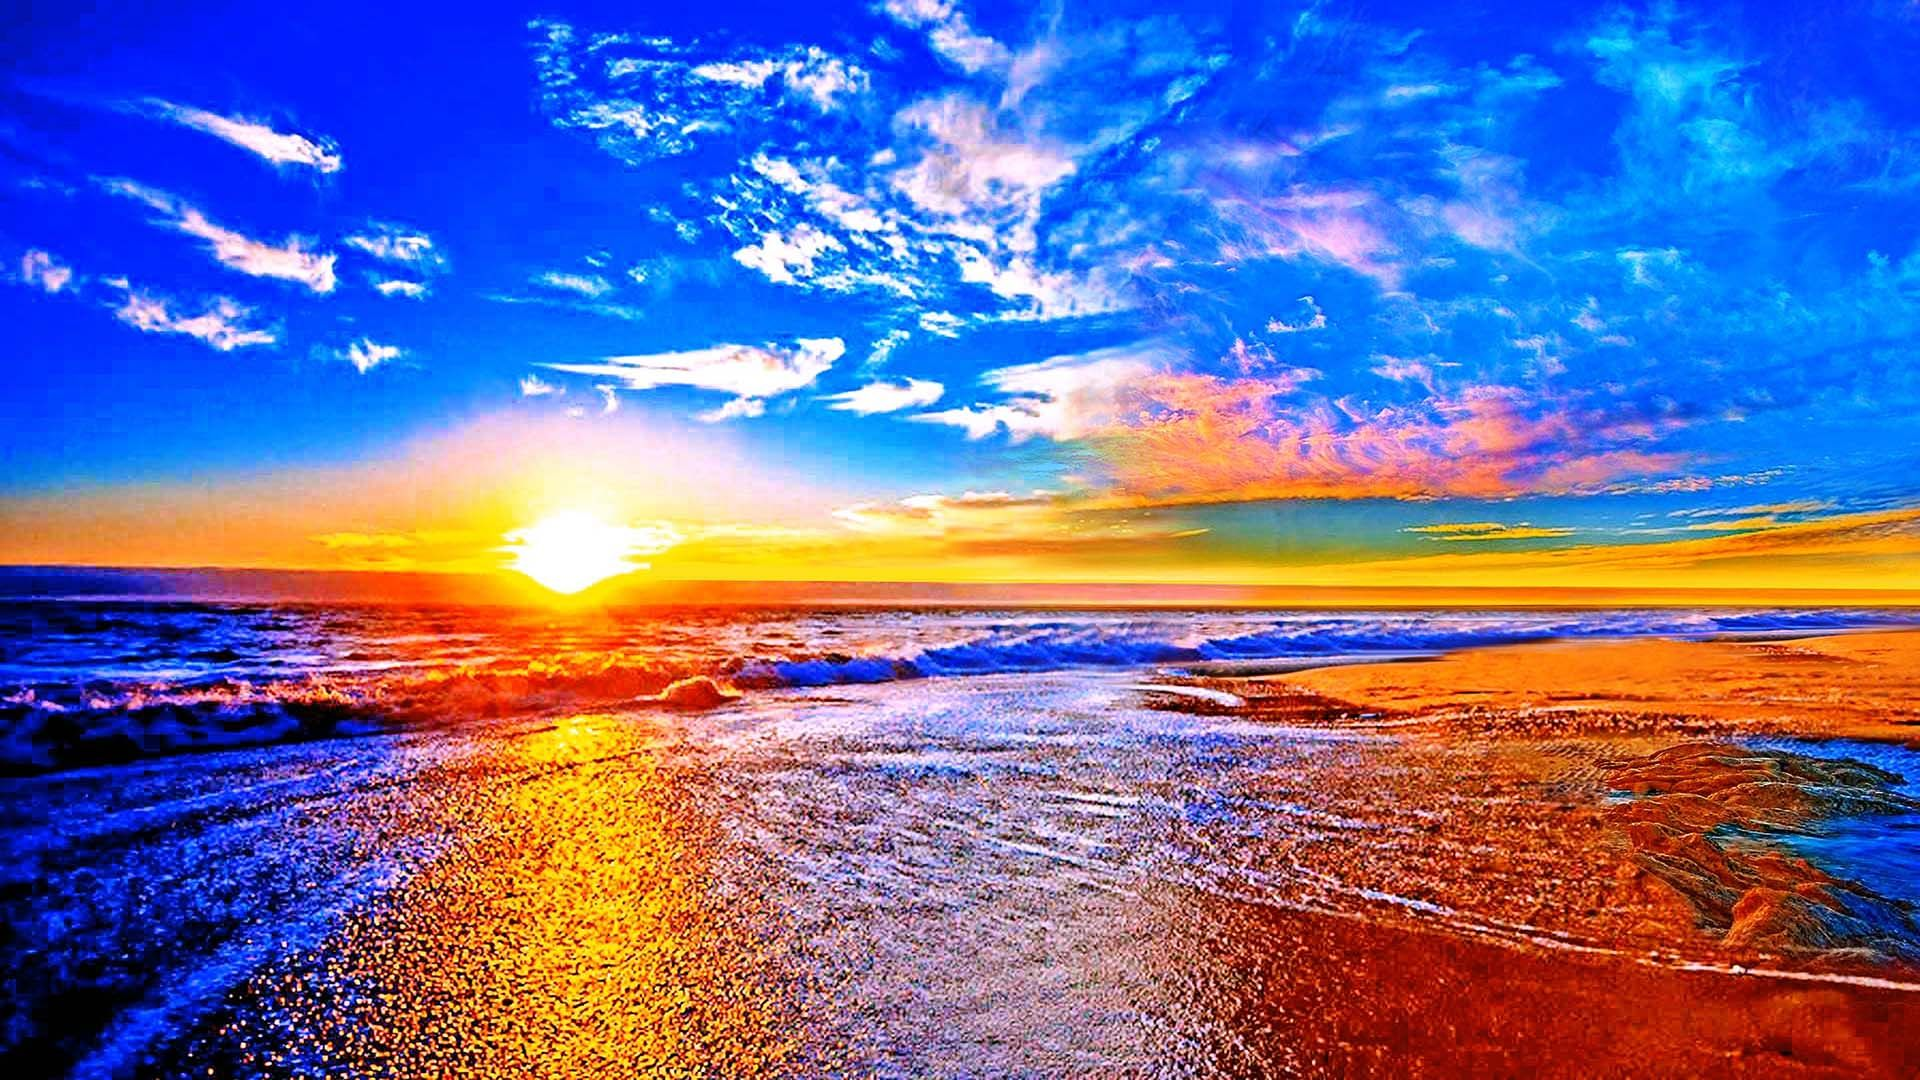 Beach At Sunset Wallpapers Live